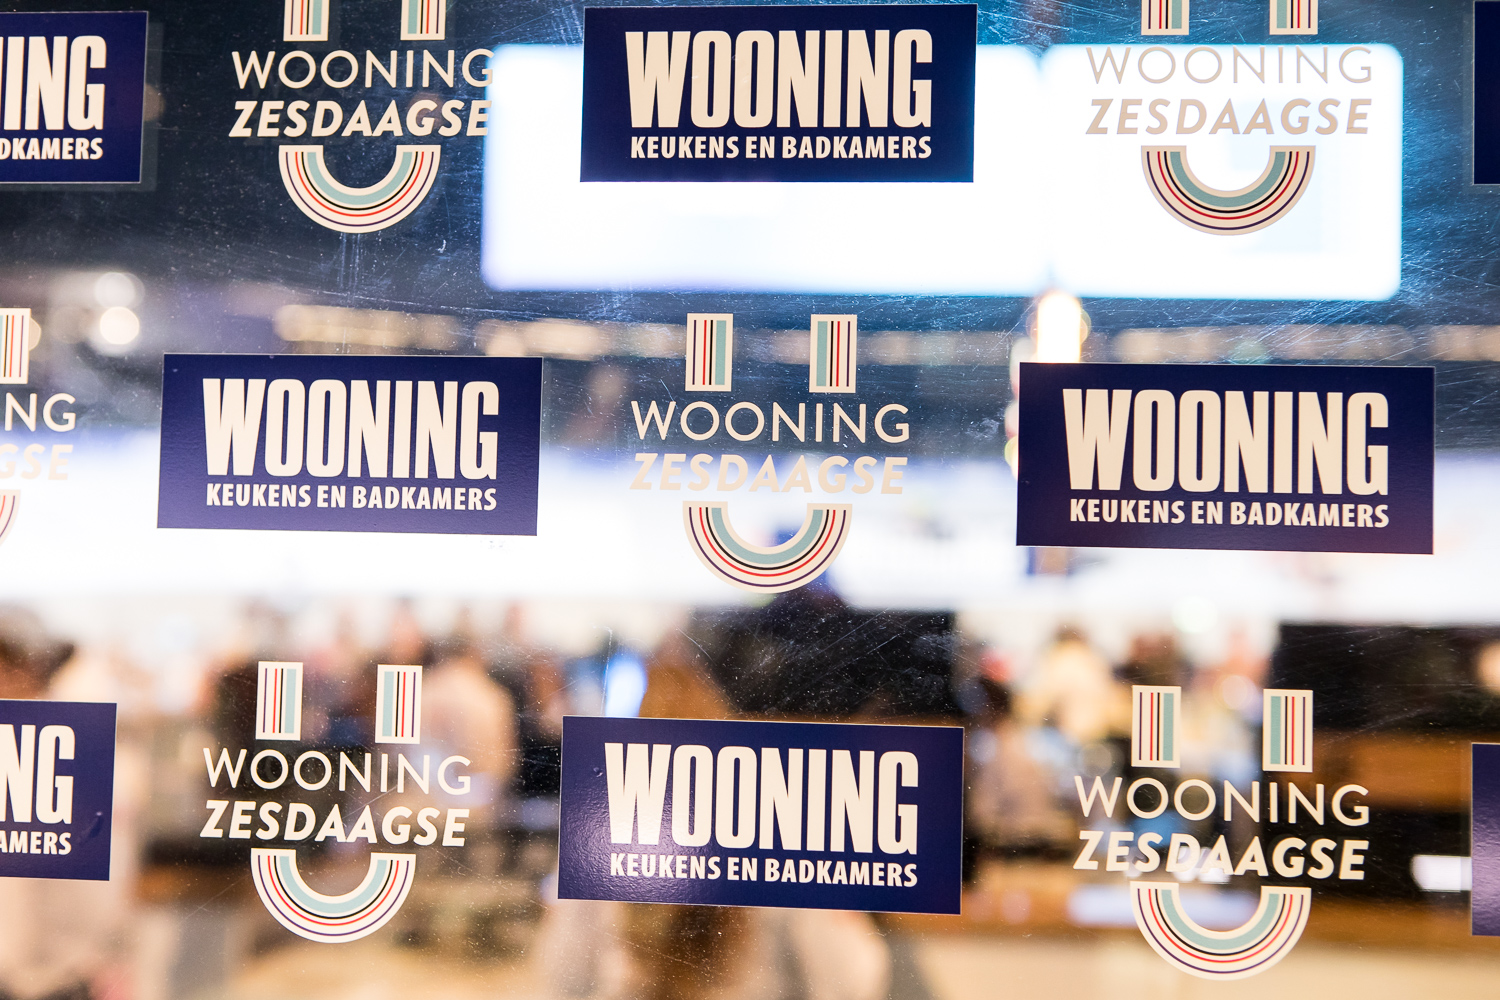 Wooning Zesdaagse 2019 in Rotterdam Ahoy